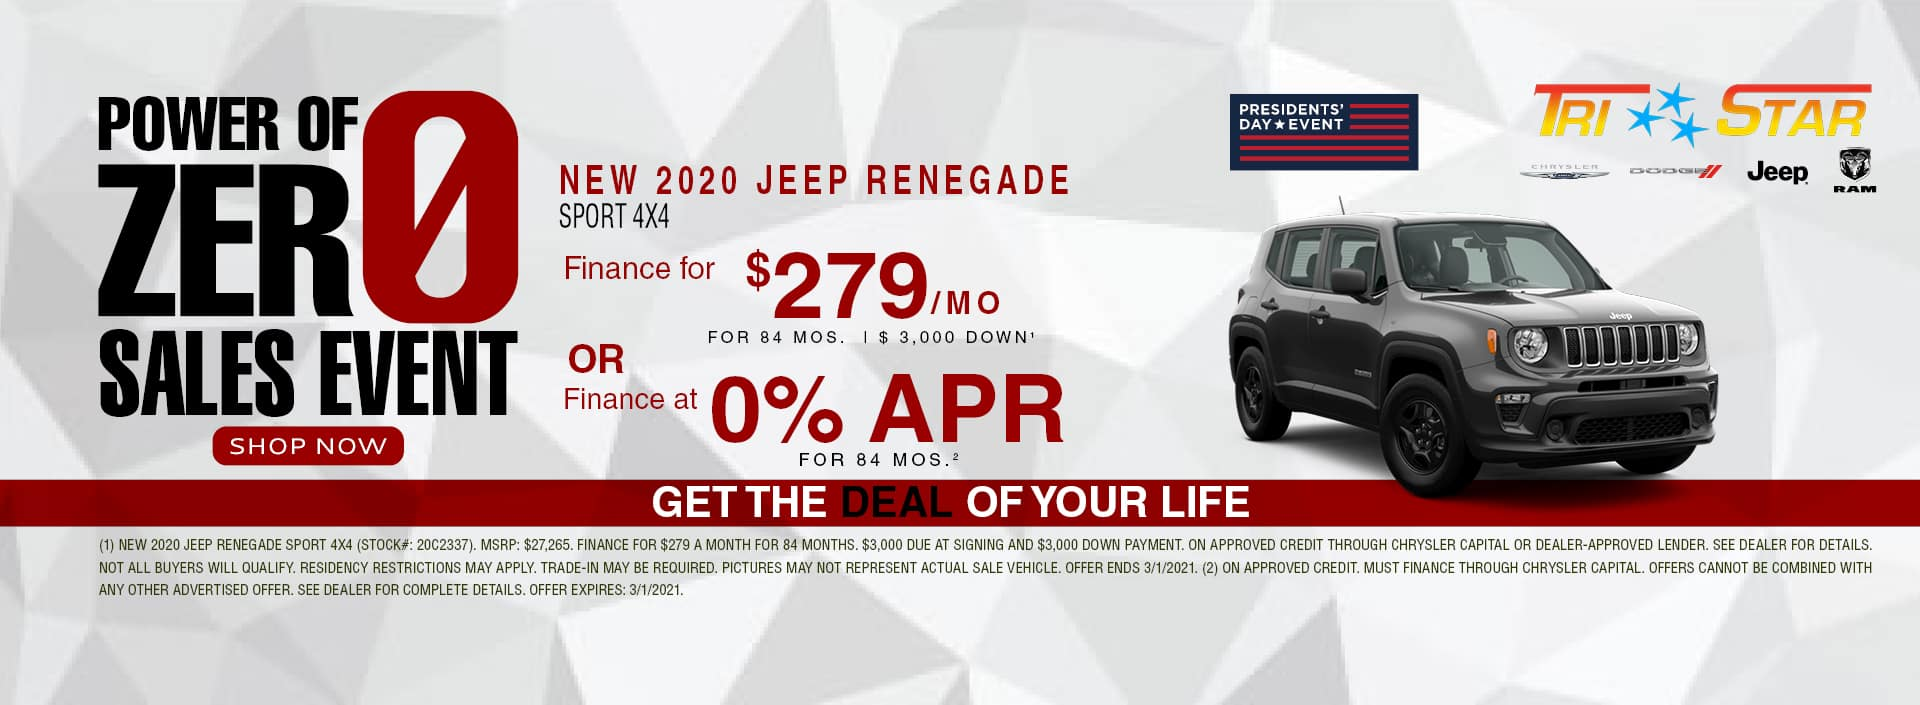 Power of 0 Sales Event - 2020 Jeep Renegade $279/mo